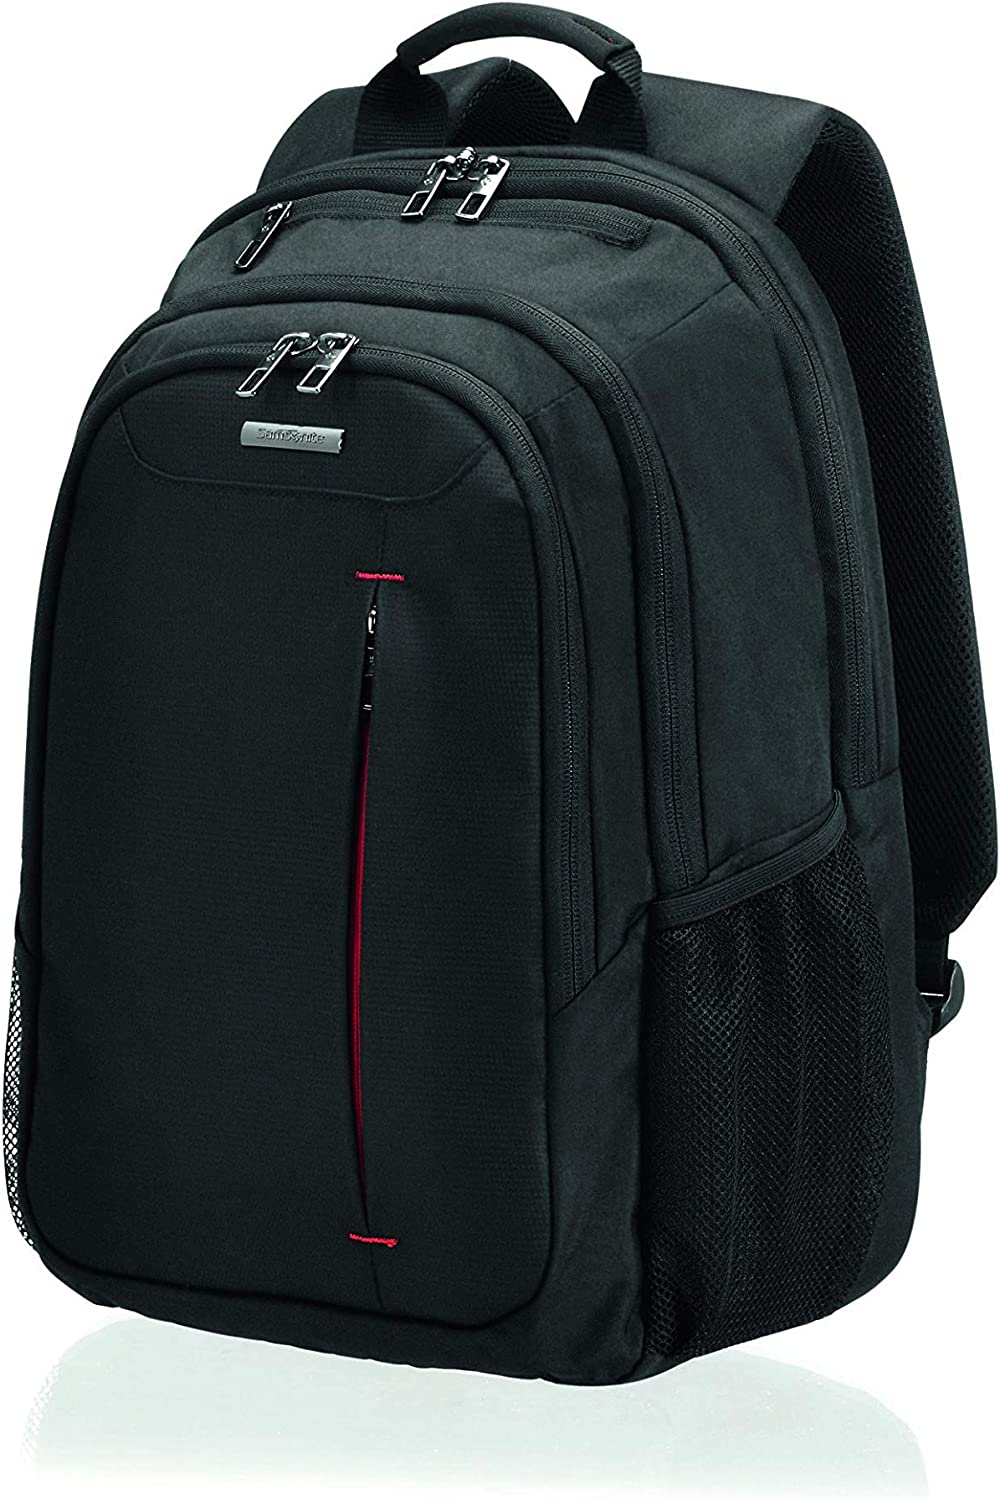 Samsonite - Guardit - Mochila para Laptop 48 cm, 27 L, Negro